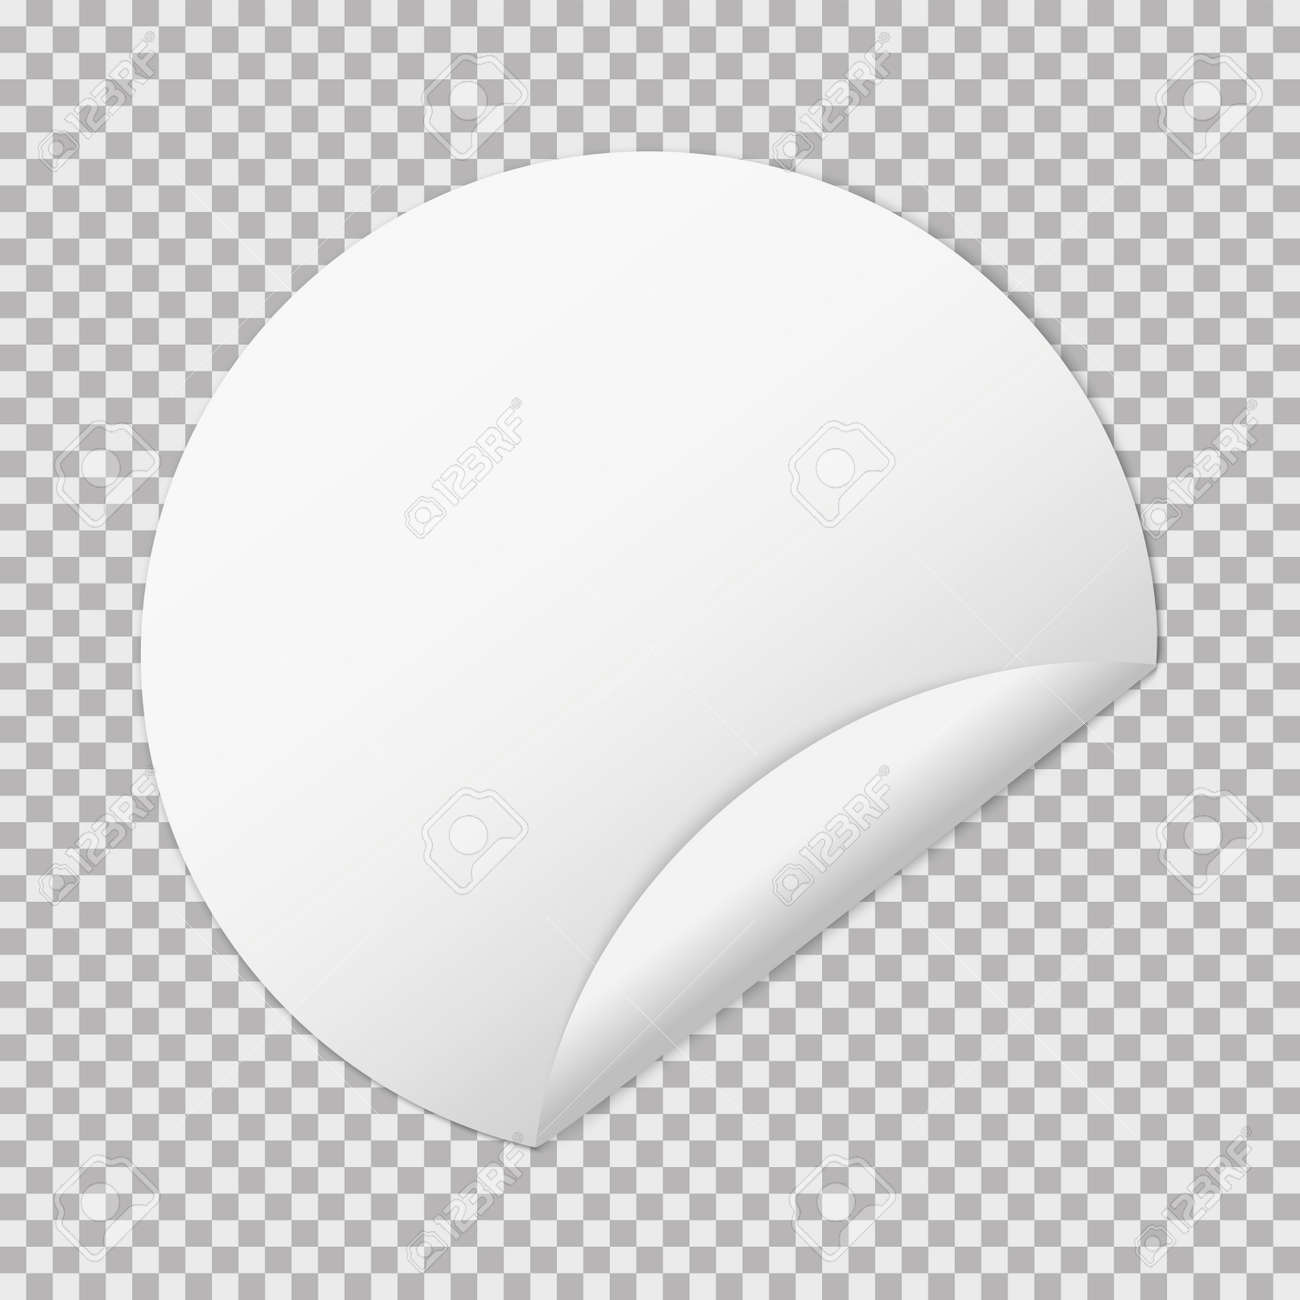 white paper round sticker banners on transparent background - 152246033